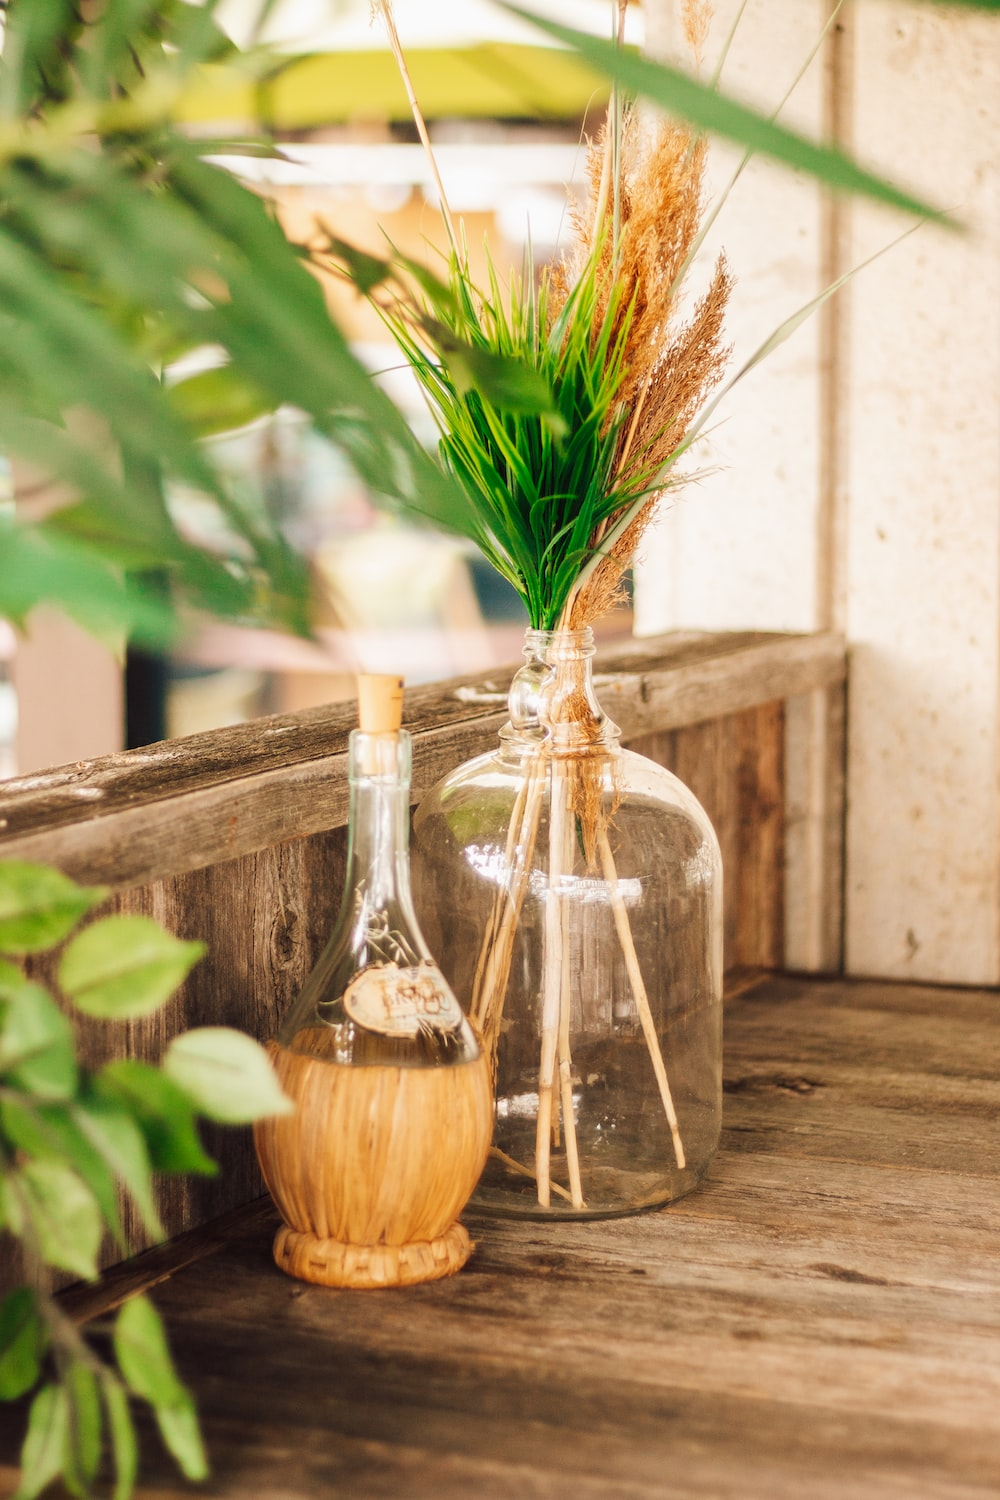 brown and green plant in clear glass bottle